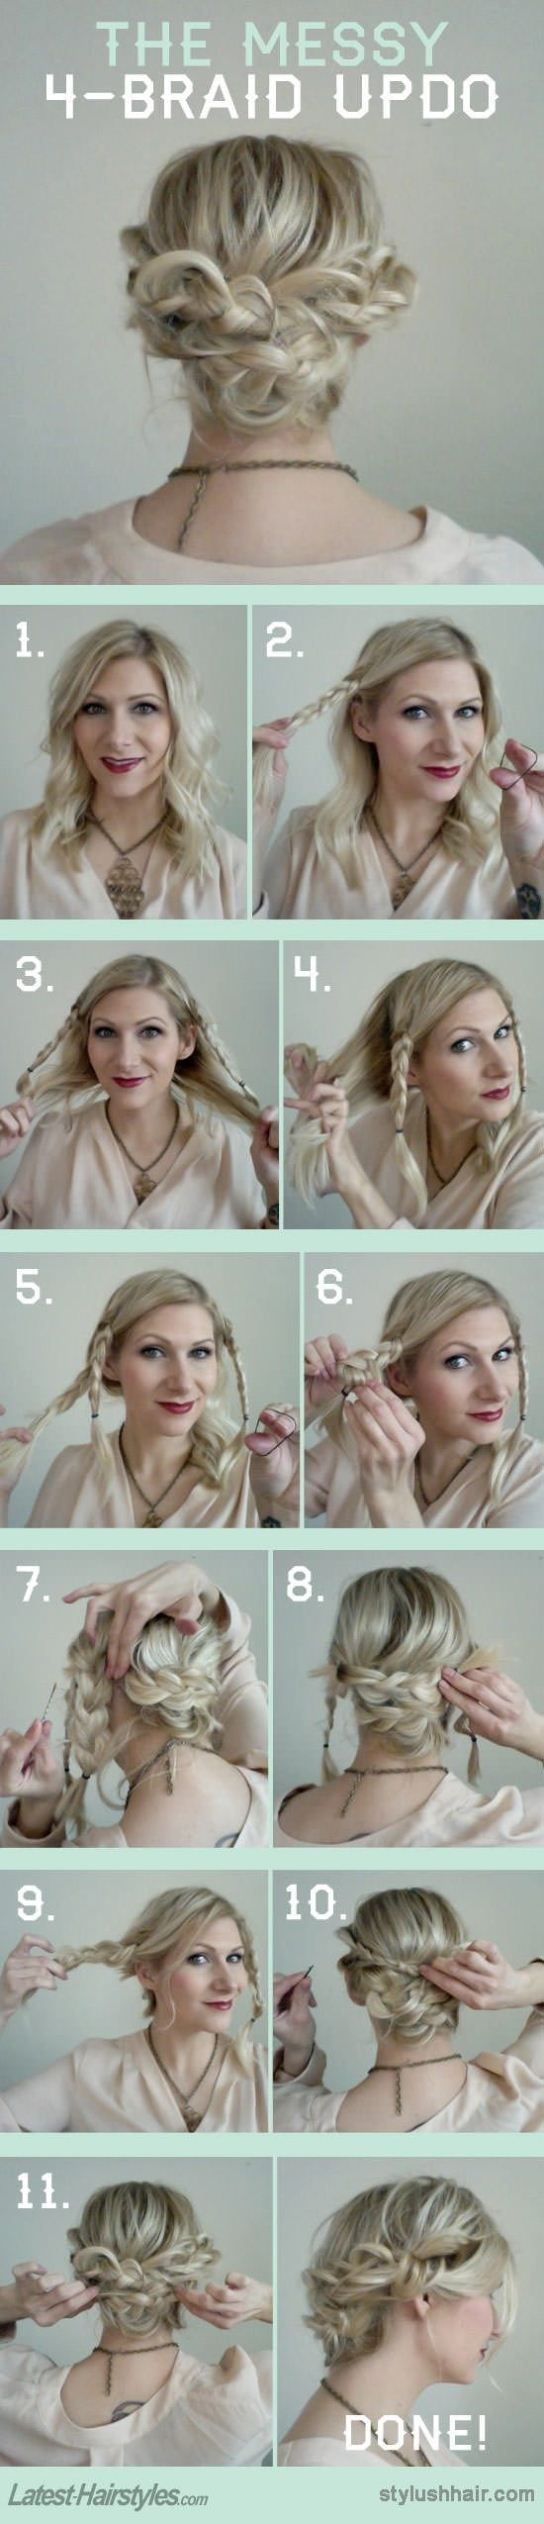 the messy 4 braid updo